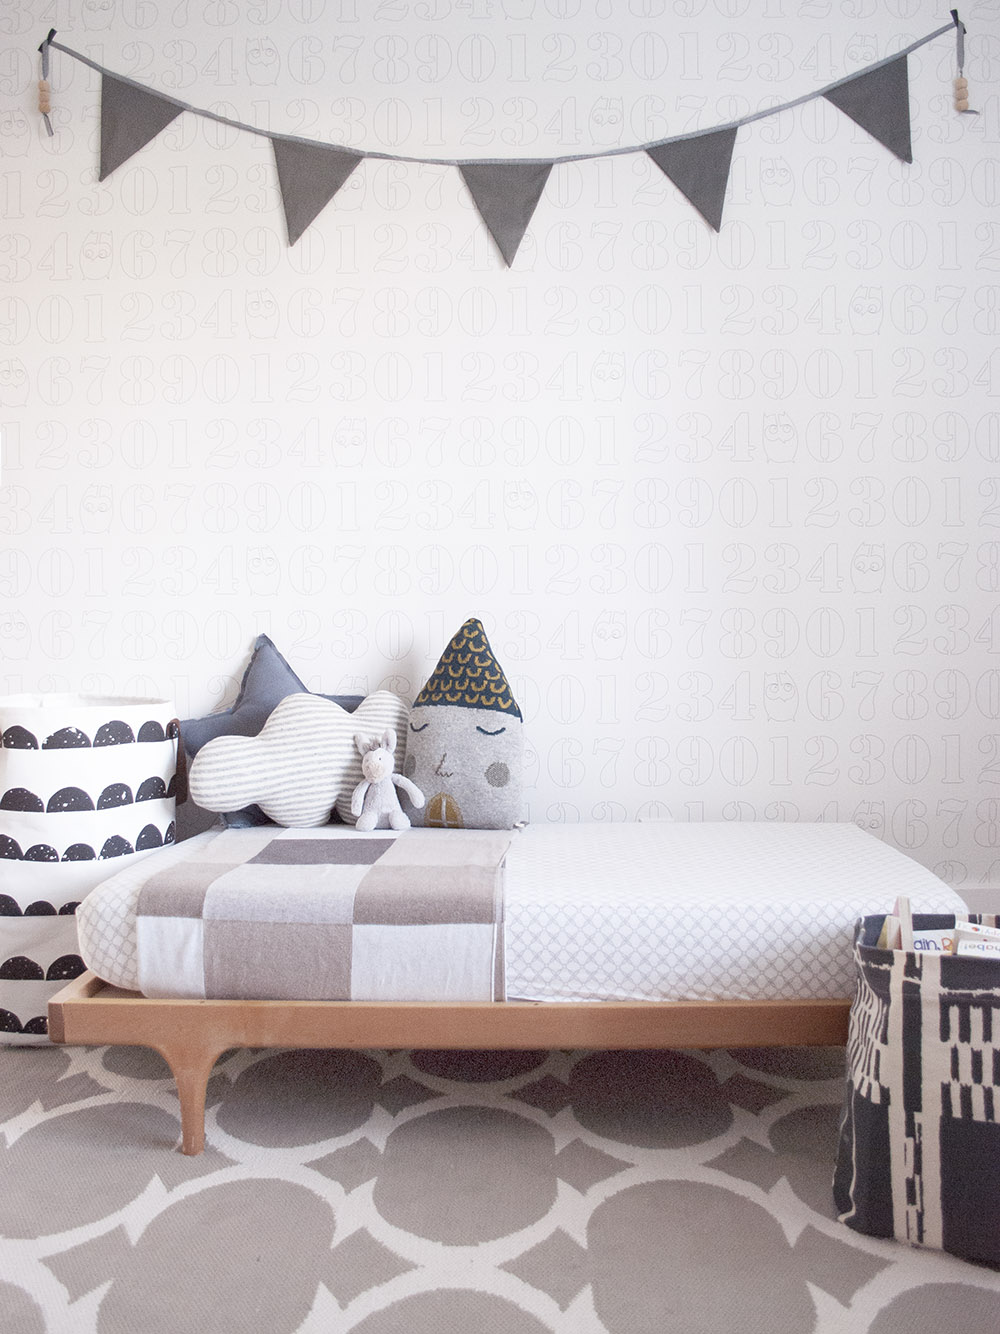 Kalon Studios toddler bed in Vancouver Interior Designer Melissa Barling's son Xavier's room